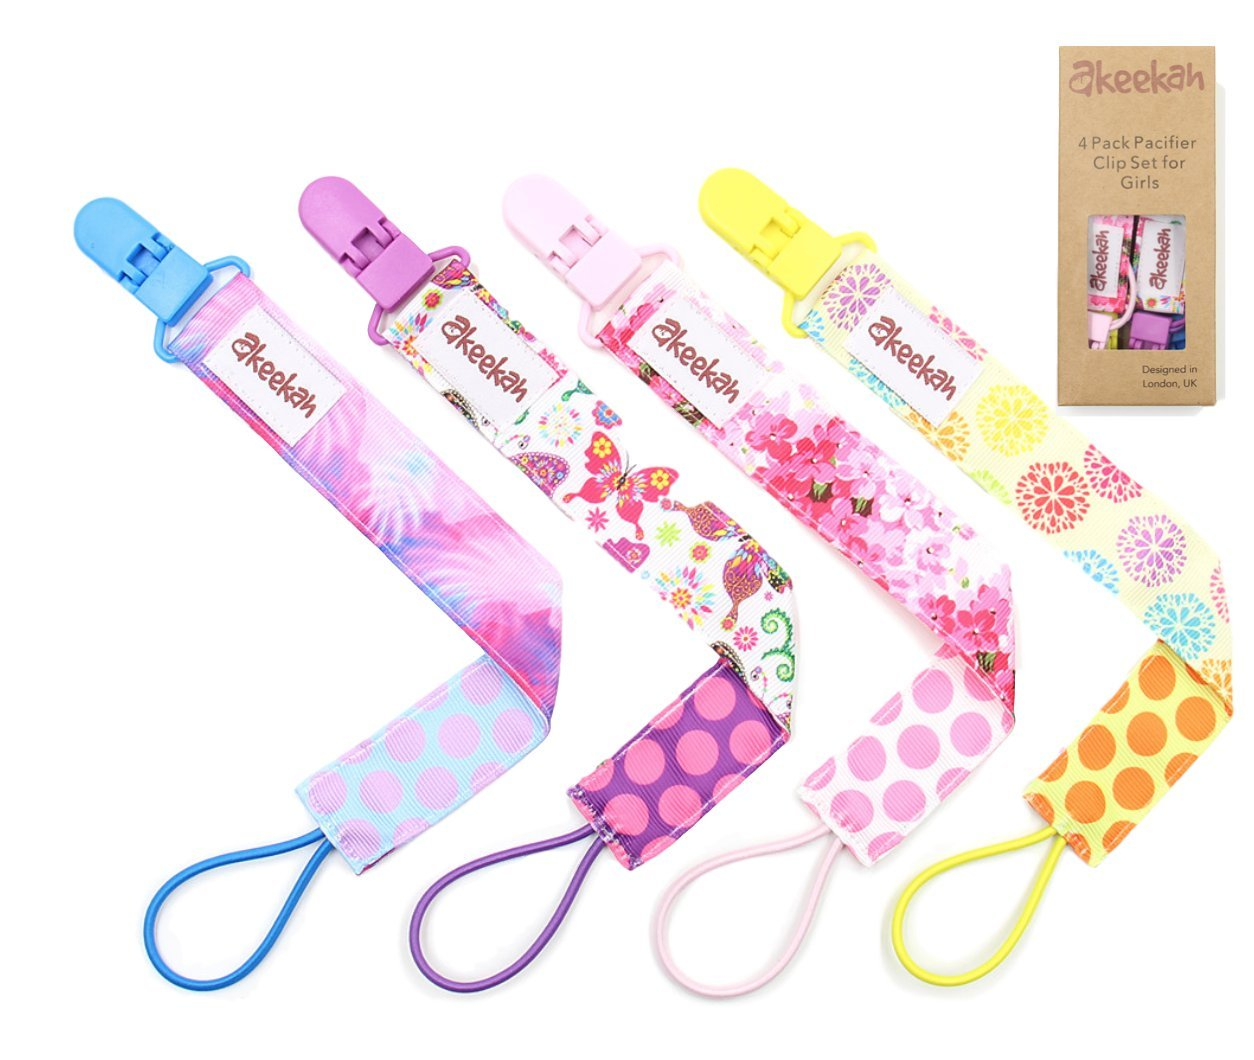 Easy Use Elastic Band Baby Dummy Clips Girls by Akeekah 4 Pack in Luxury Gift-Box Premium Baby Dummy Holder and Soother Clips with Colourful Designs Safe BPA-Free and Stylish Pacifier Clips